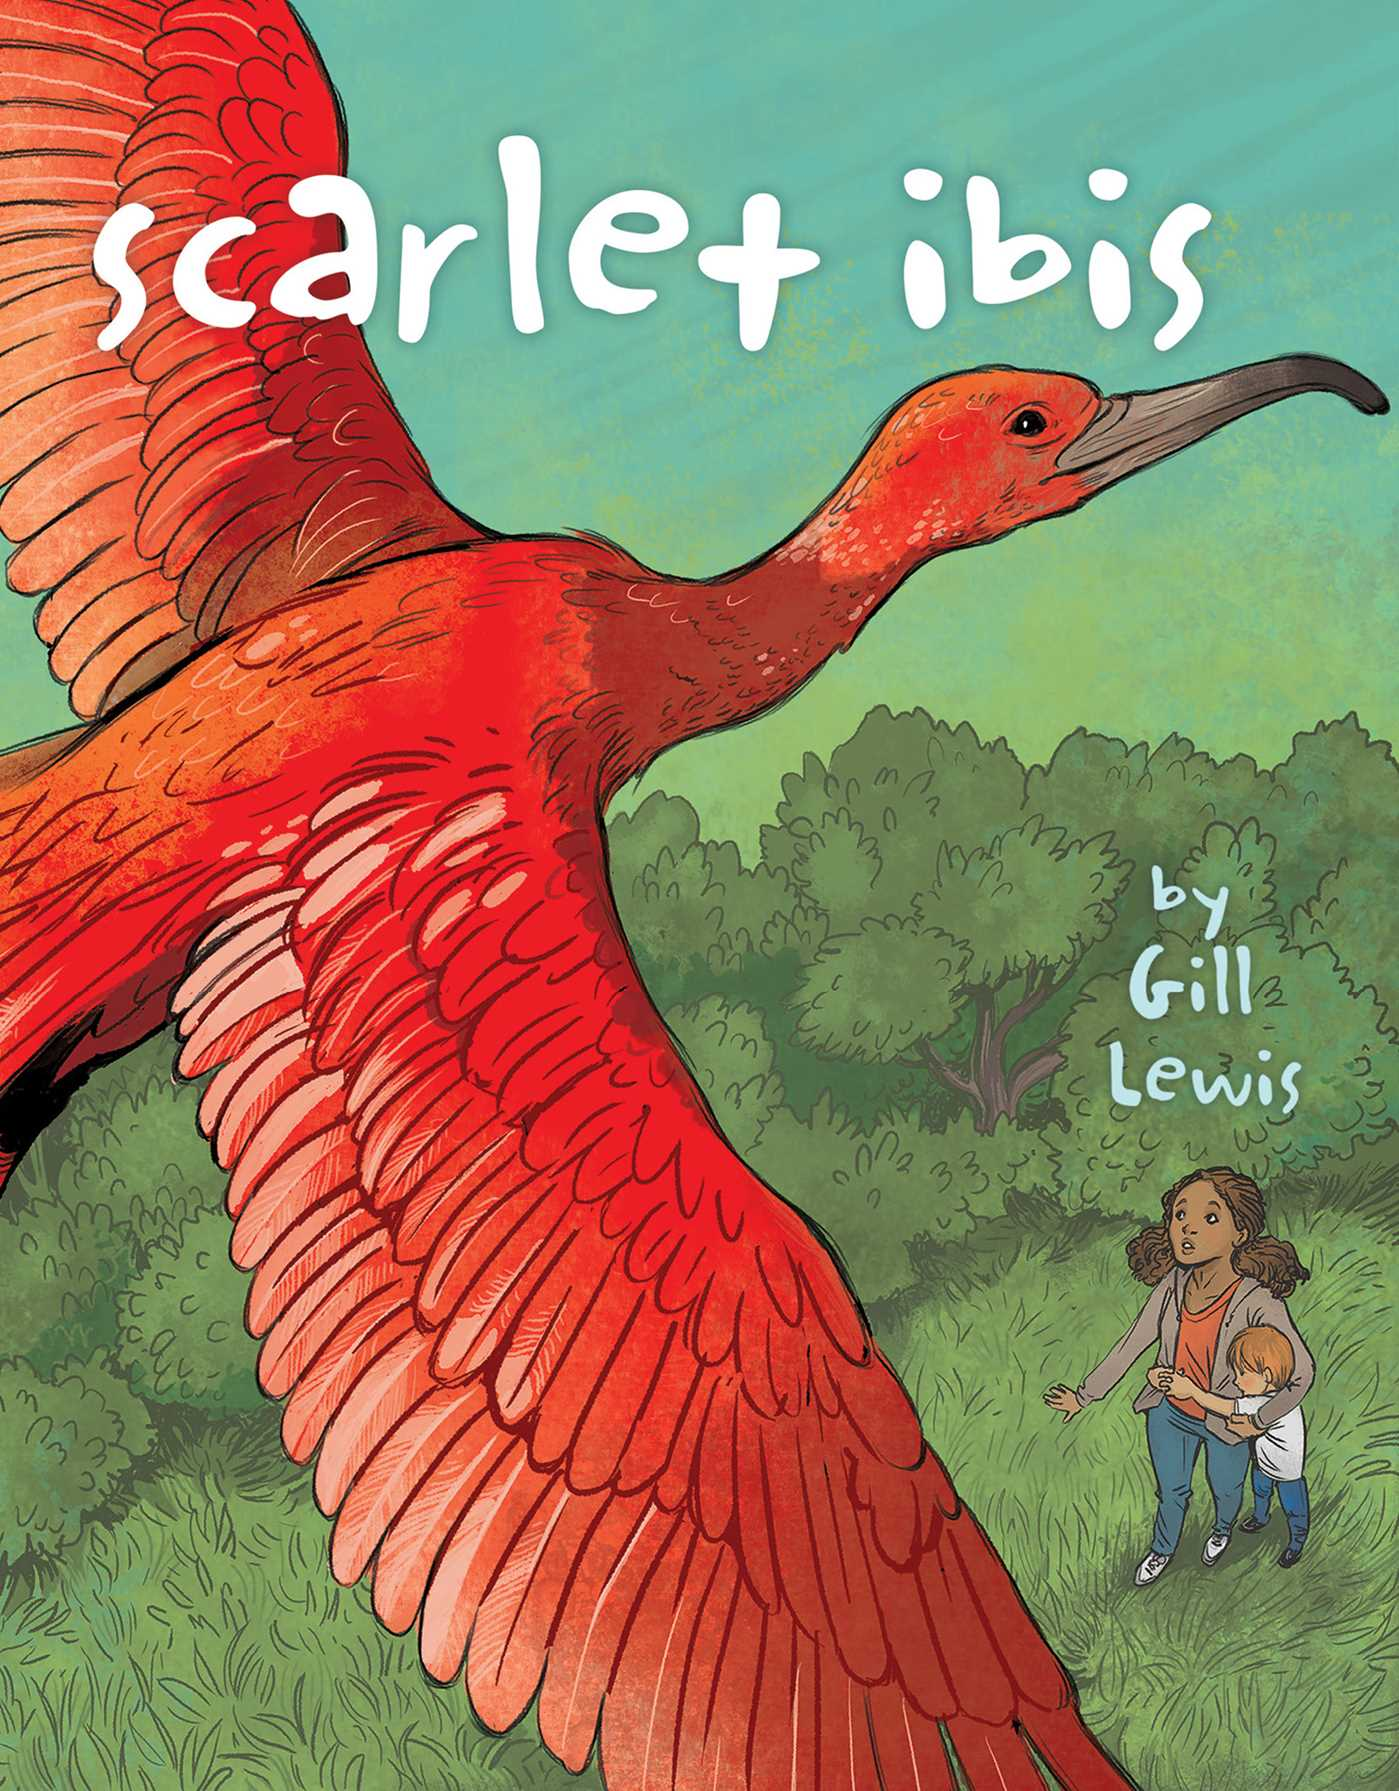 Scarlet Ibis and cartoon sketch of children